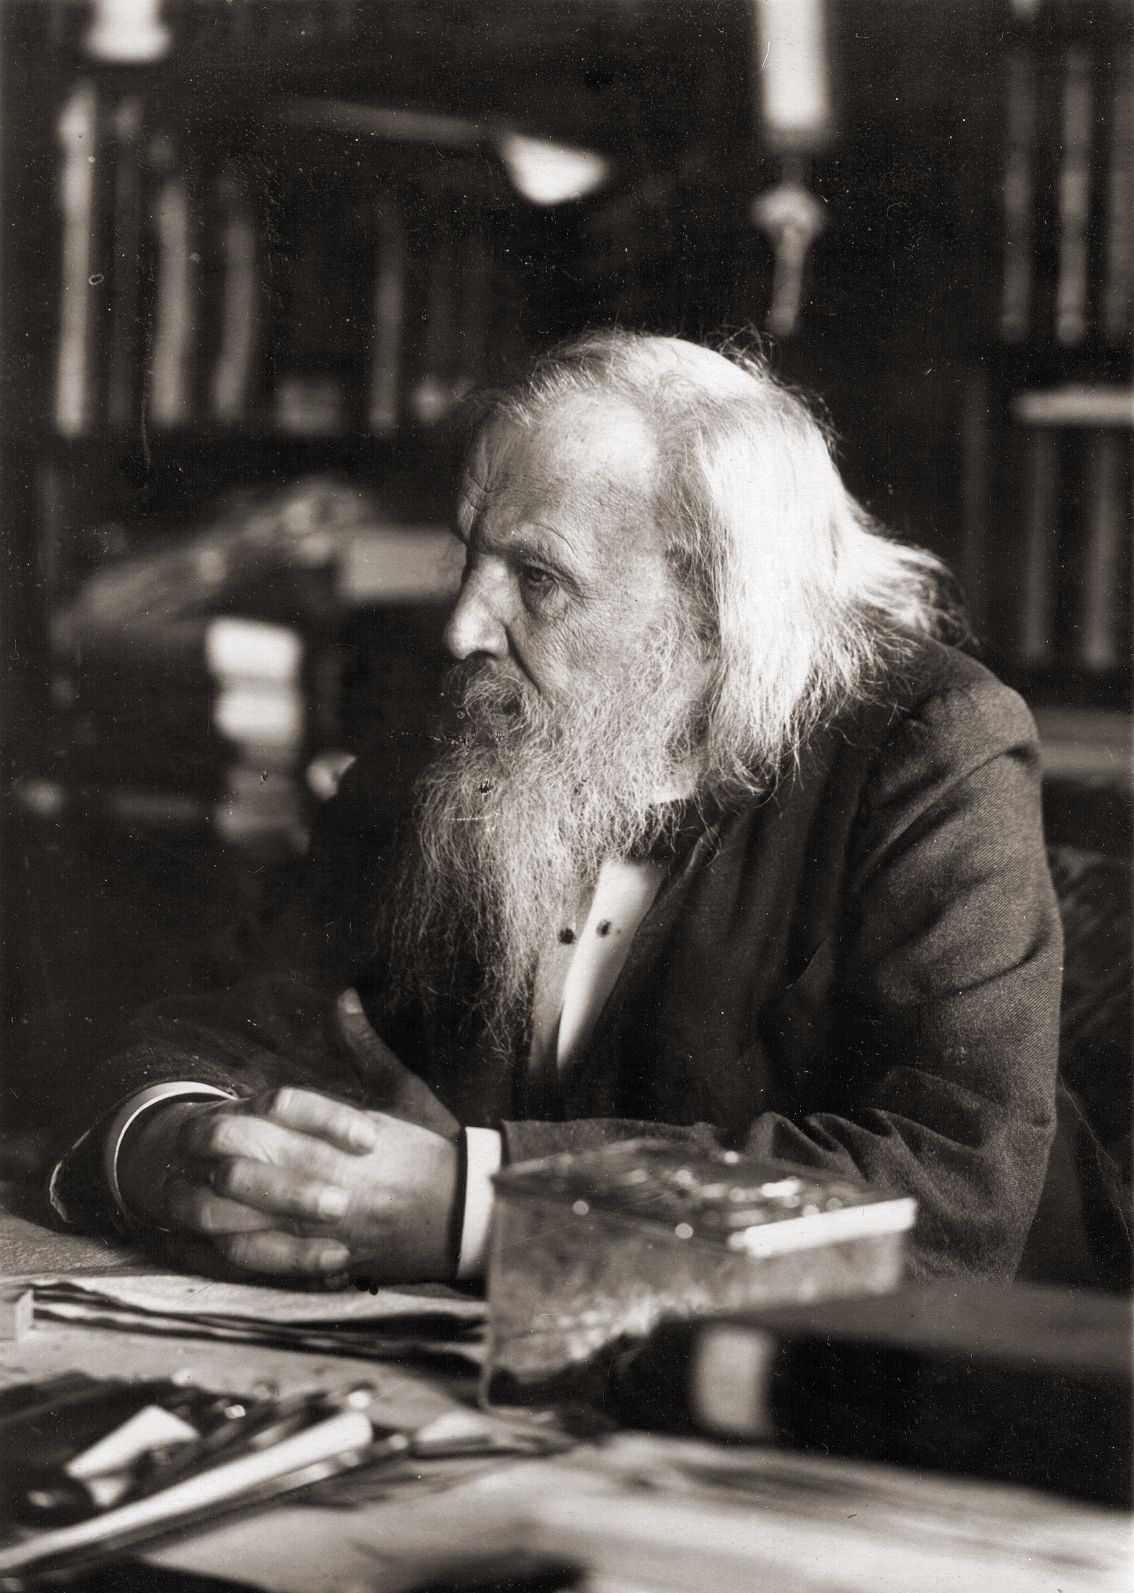 Dmitri Mendeleyev - Scientist, Chemist, Academic - Biography